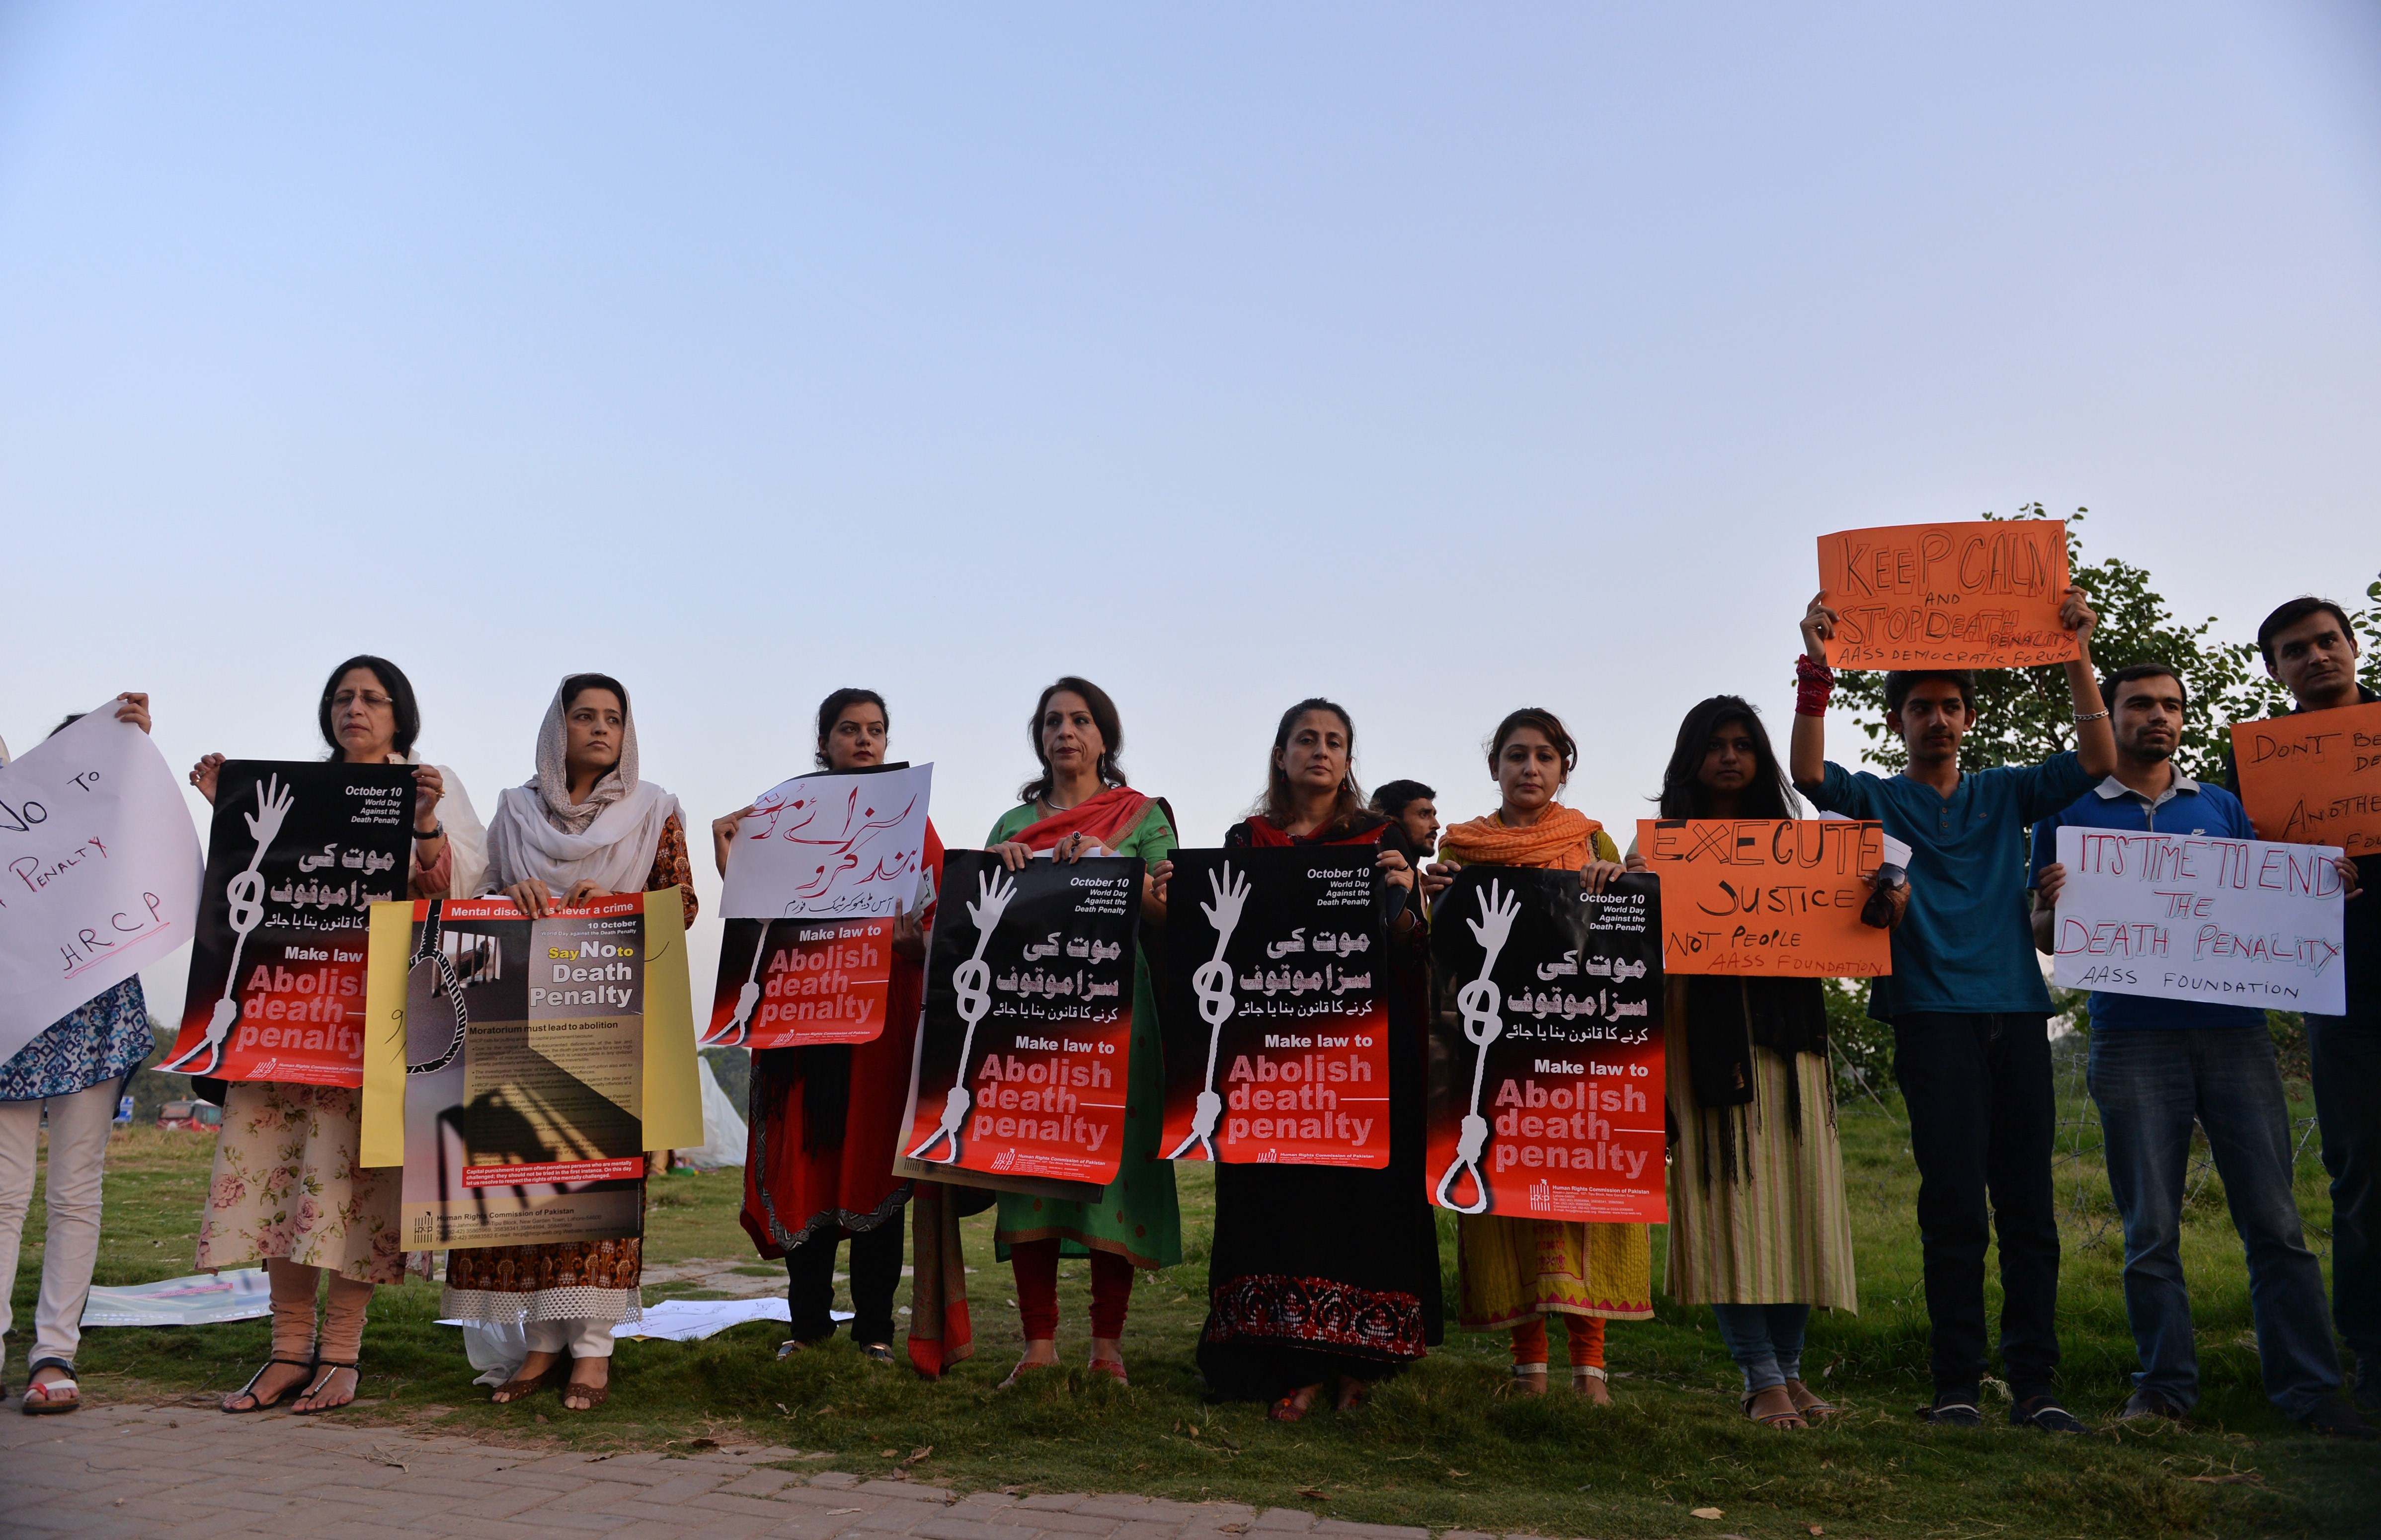 Pakistani NGO activists protest the death penalty in Islamabad on Oct. 10, 2014